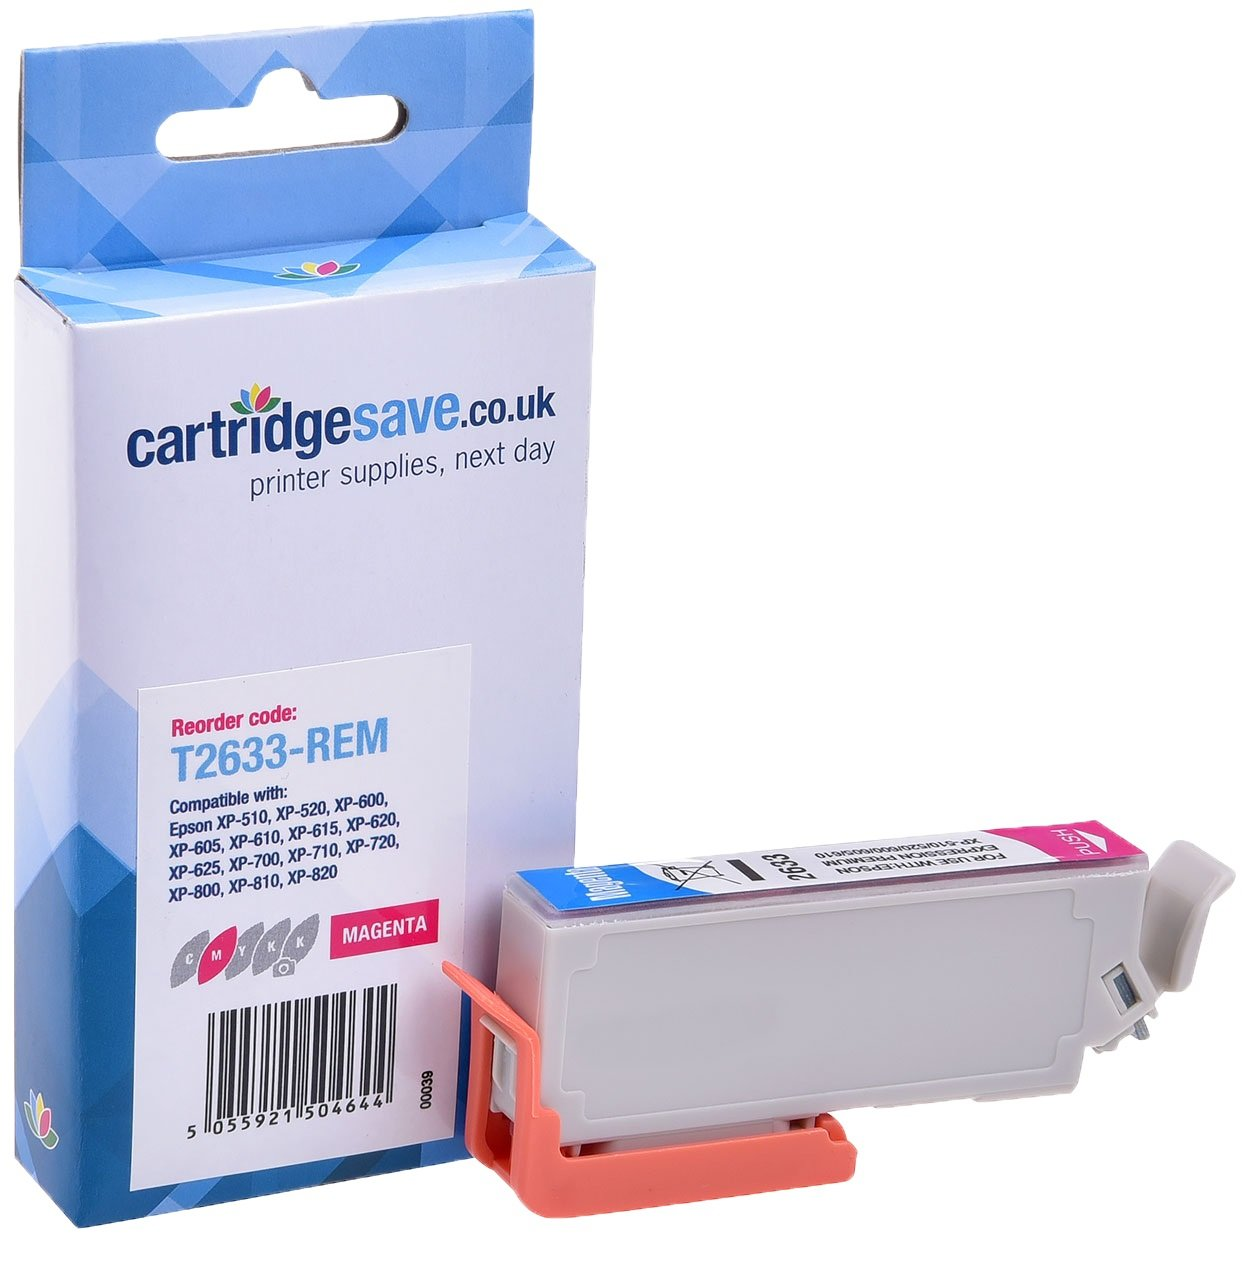 Compatible Magenta Epson 26XL High Capacity Ink Cartridge - (Replaces Epson T2633 Polar Bear Inkjet Printer Cartridge)